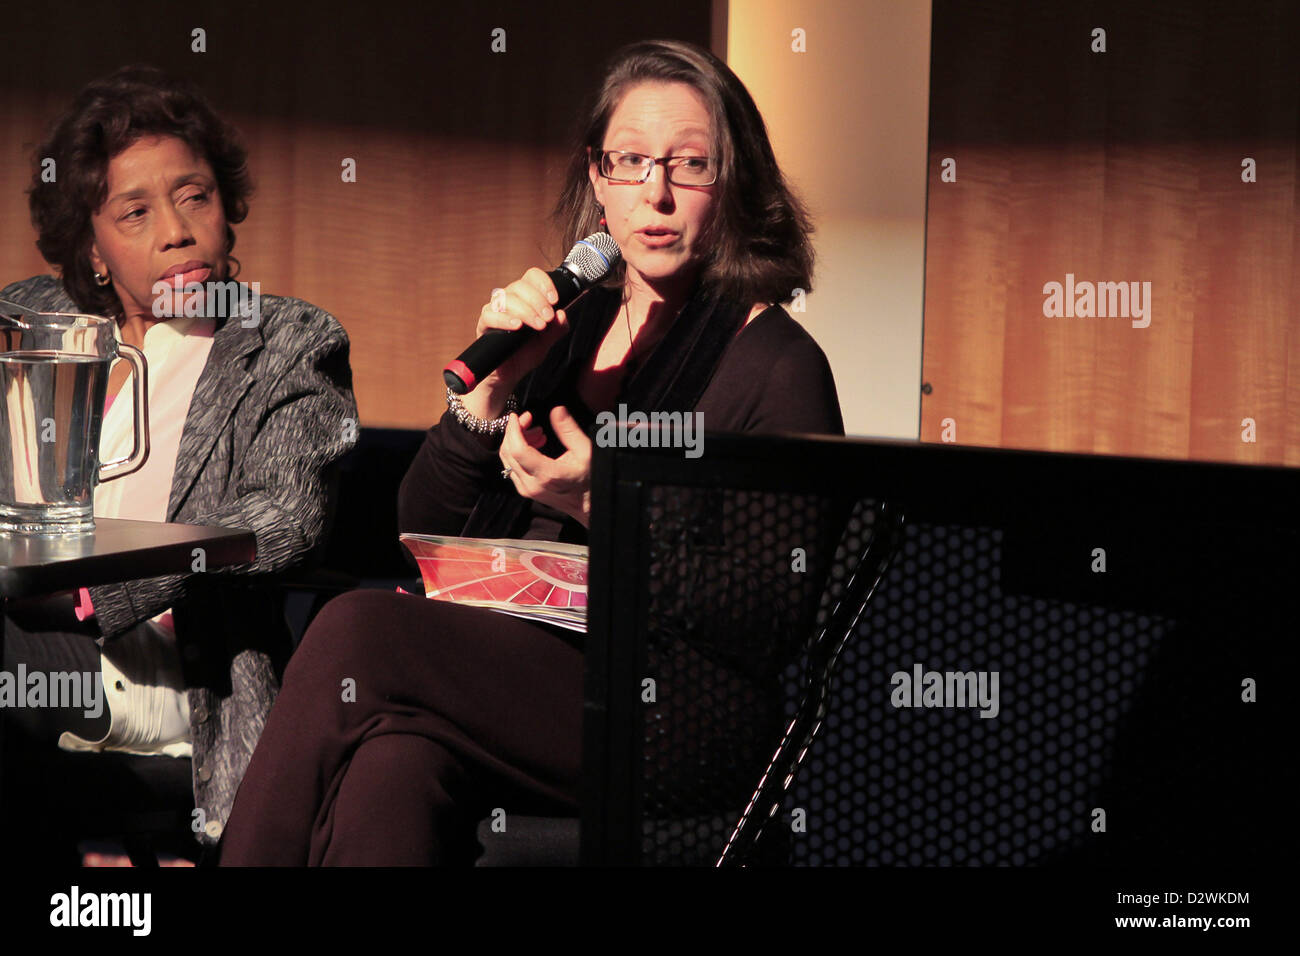 Feb. 2, 2013 - Tuxedo Ridge, NY, U.S. - Composer Susan Botti speaks with Laura Kaminsky and Tania Leon duringThe Stock Photo